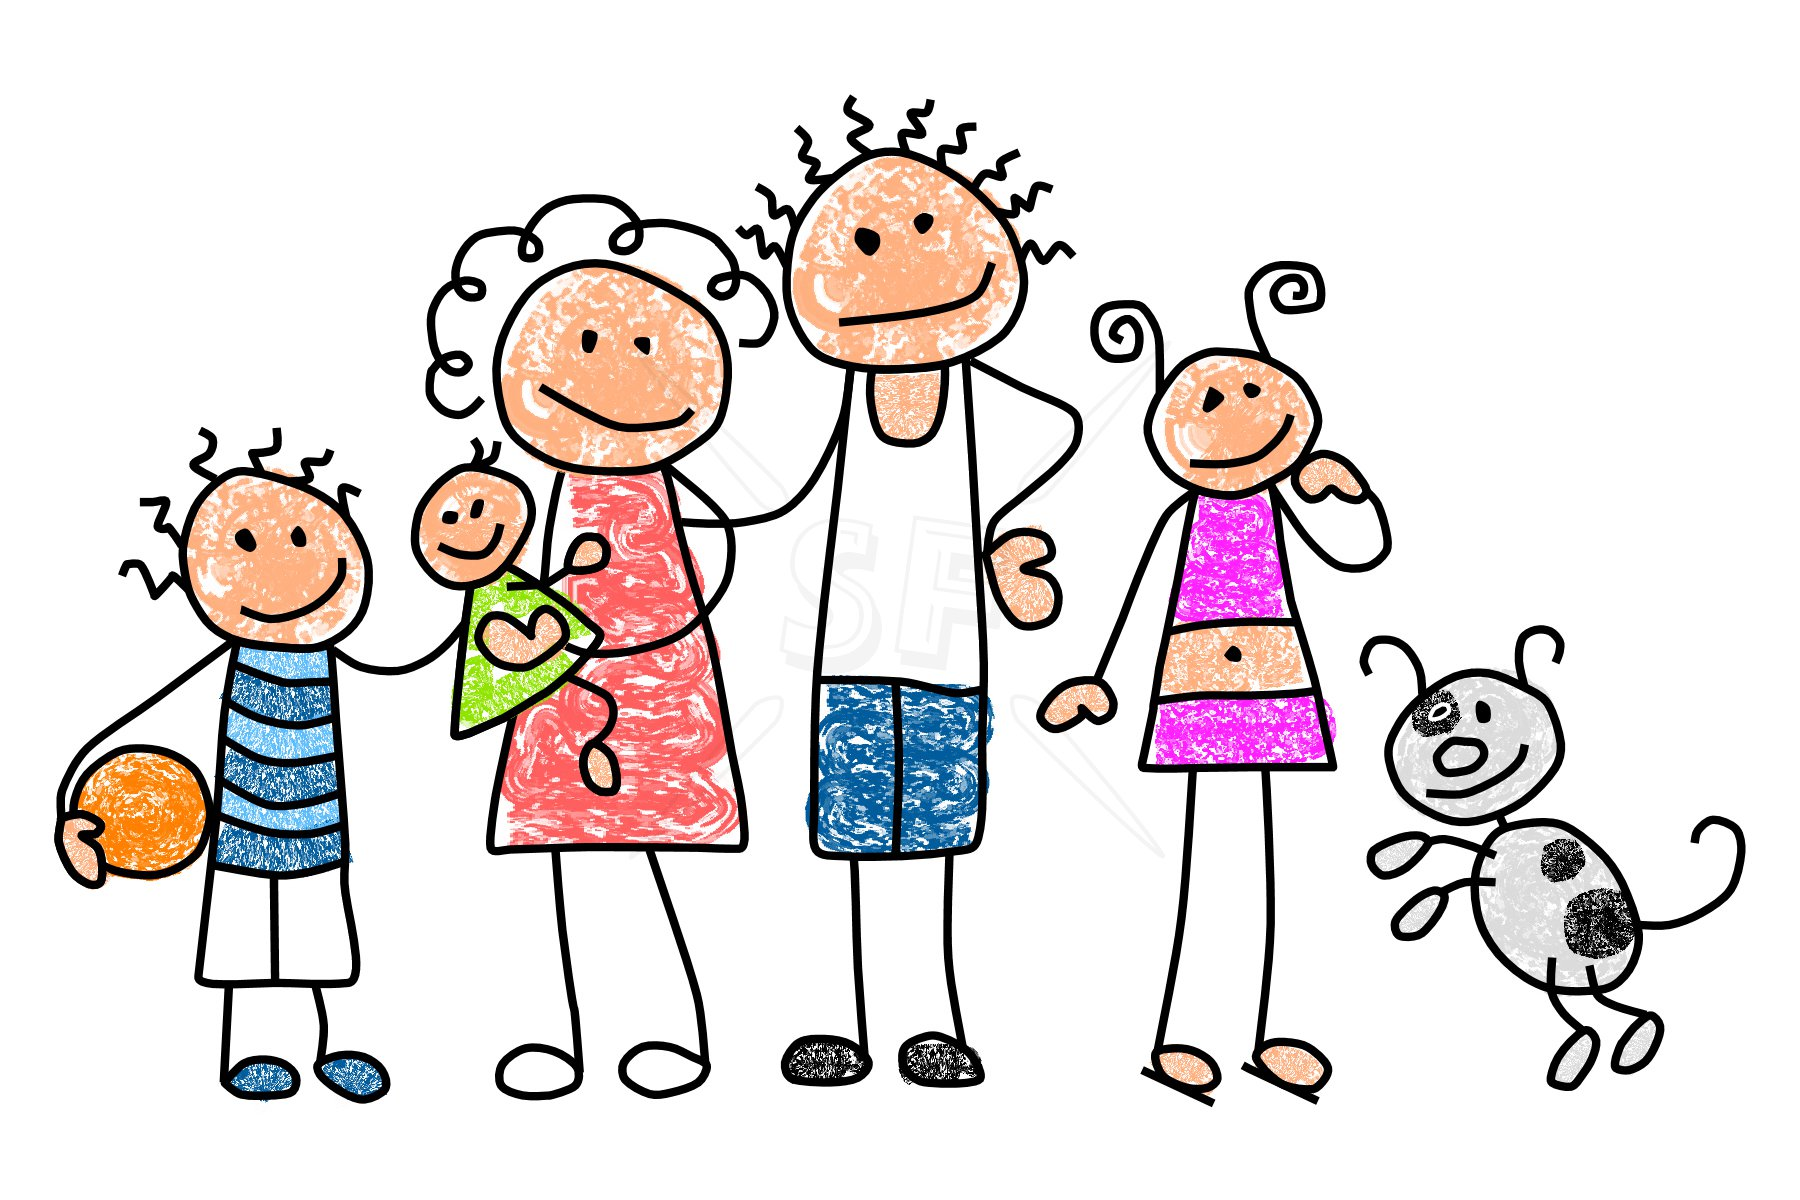 Family clipart 5 people stick people jpg royalty free Free Pictures Family, Download Free Clip Art, Free Clip Art on ... jpg royalty free